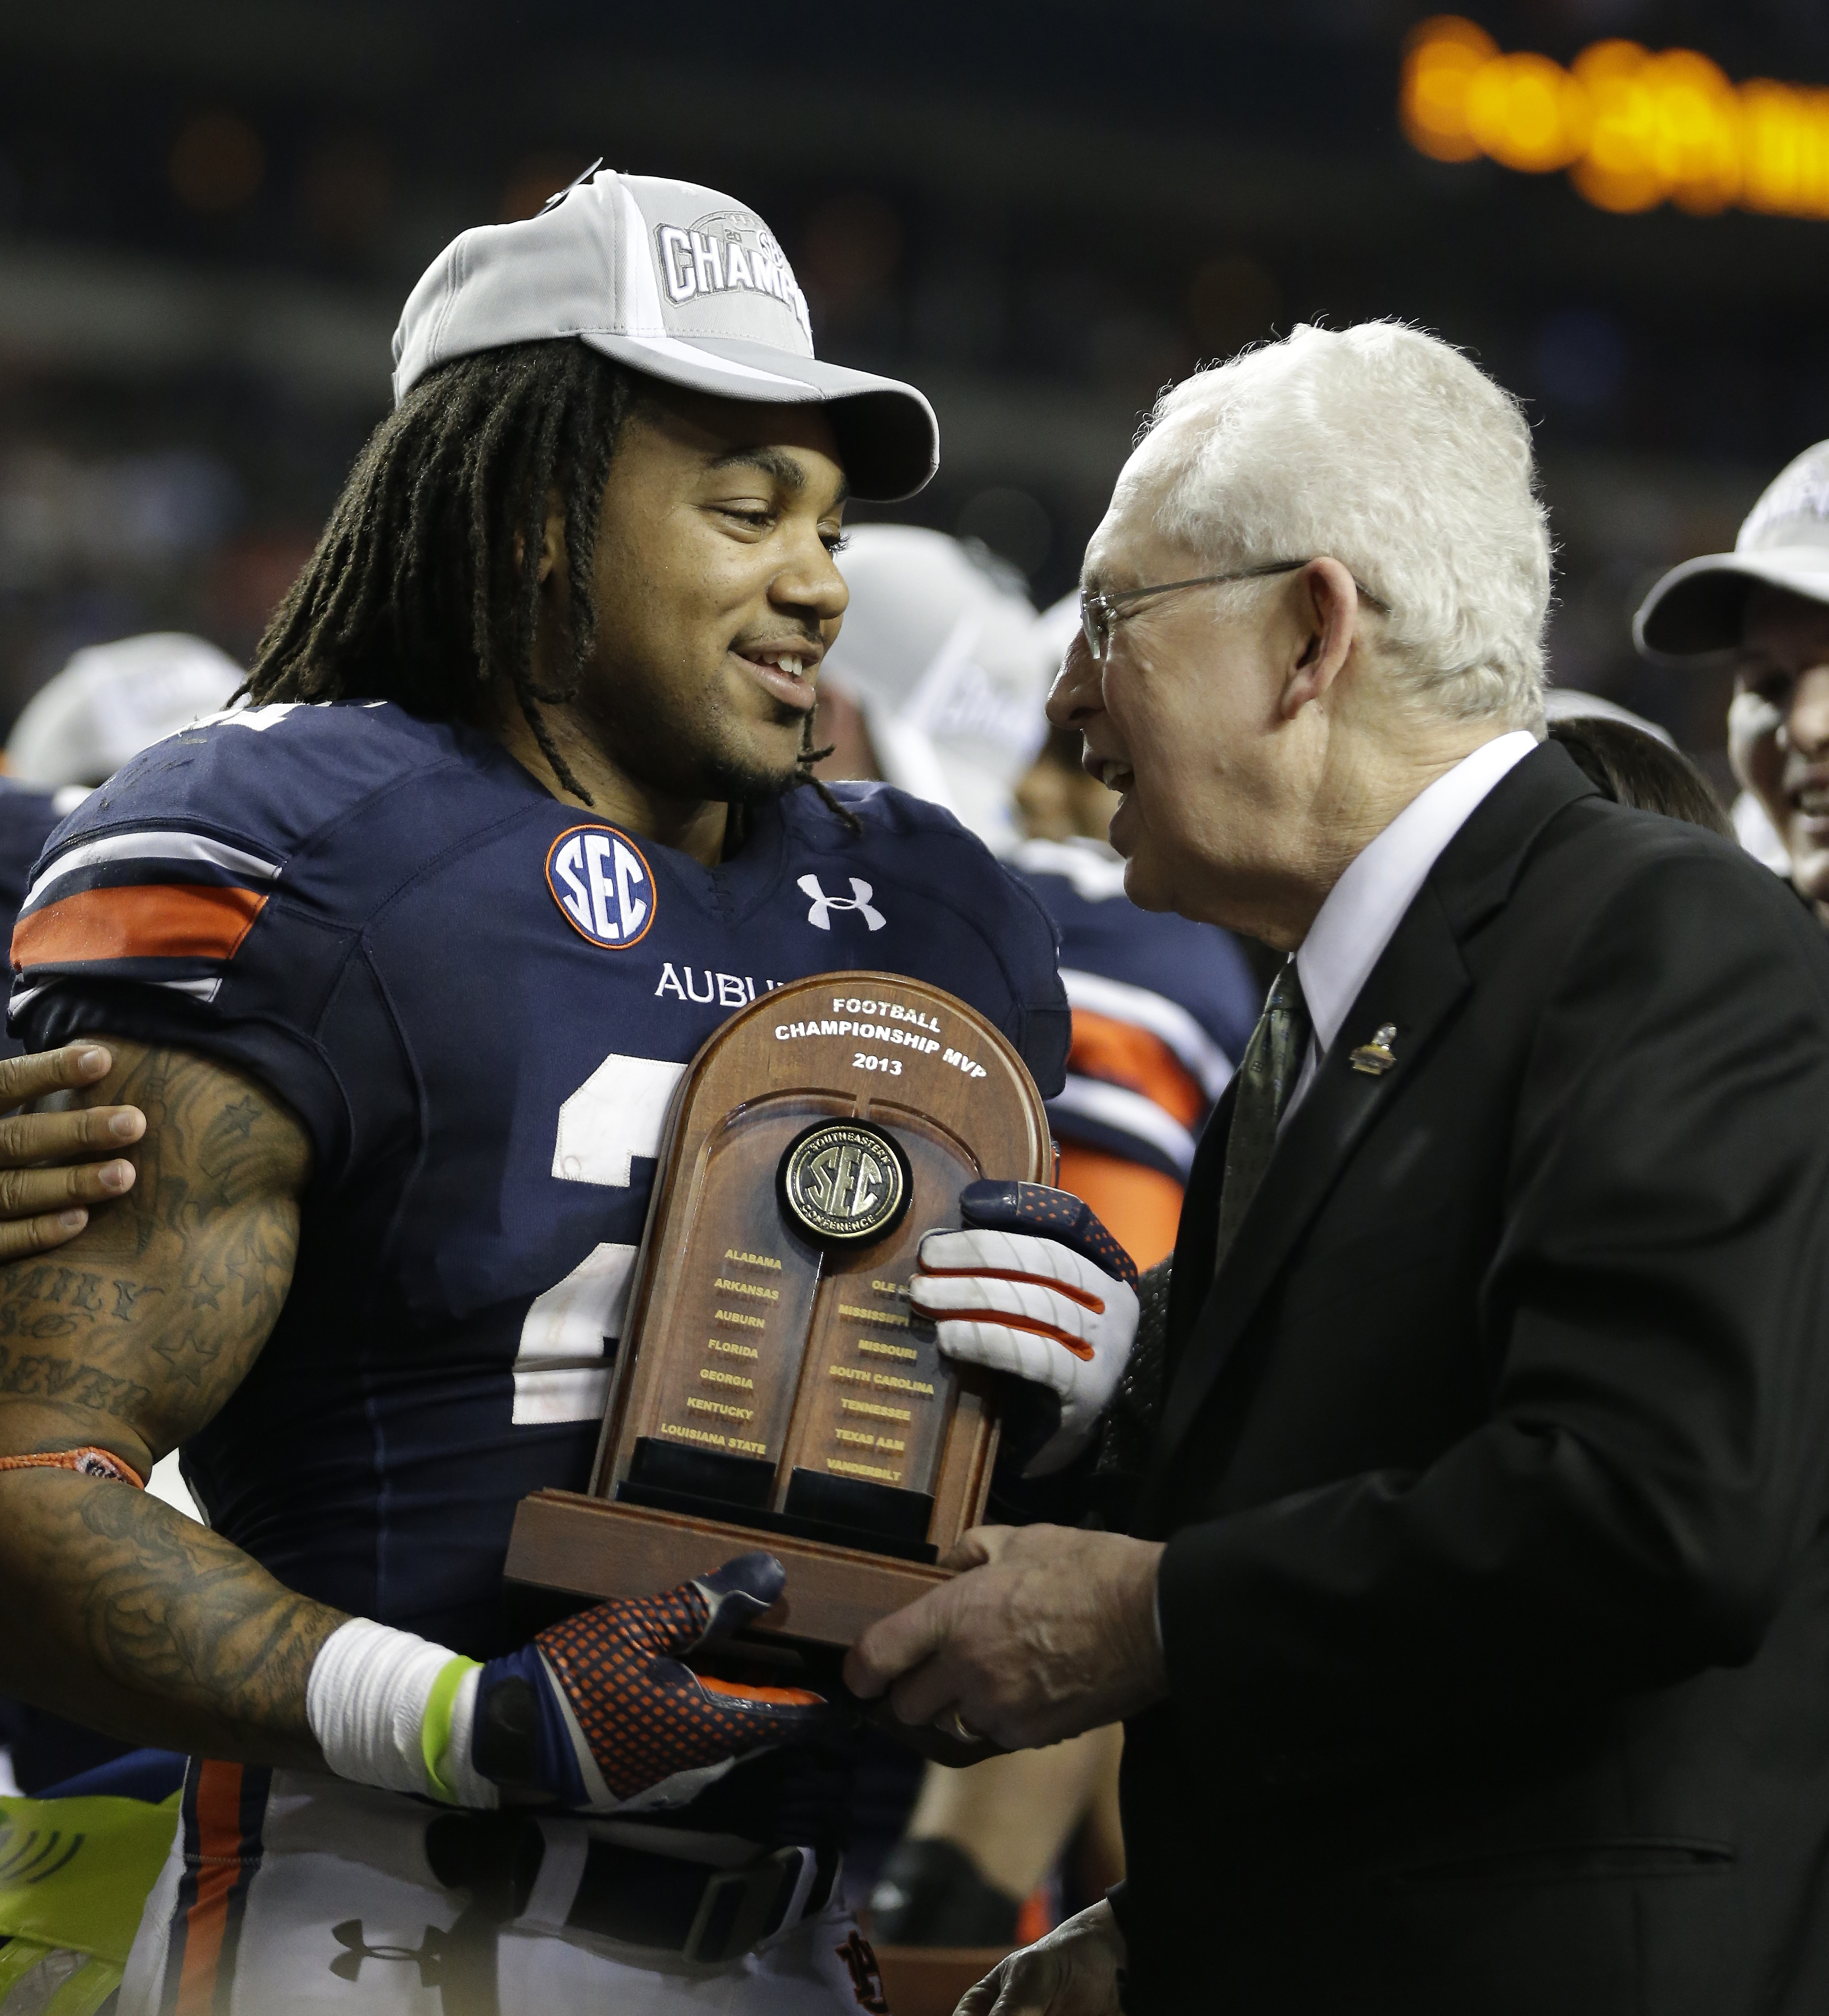 SEC Commissioner Mike Slive, right, presents the MVP trophy to Auburn running back Tre Mason after the second half of the Southeastern Conference NCAA football championship game against Missouri, Saturday, Dec. 7, 2013, in Atlanta. Auburn won 59-42. (AP P